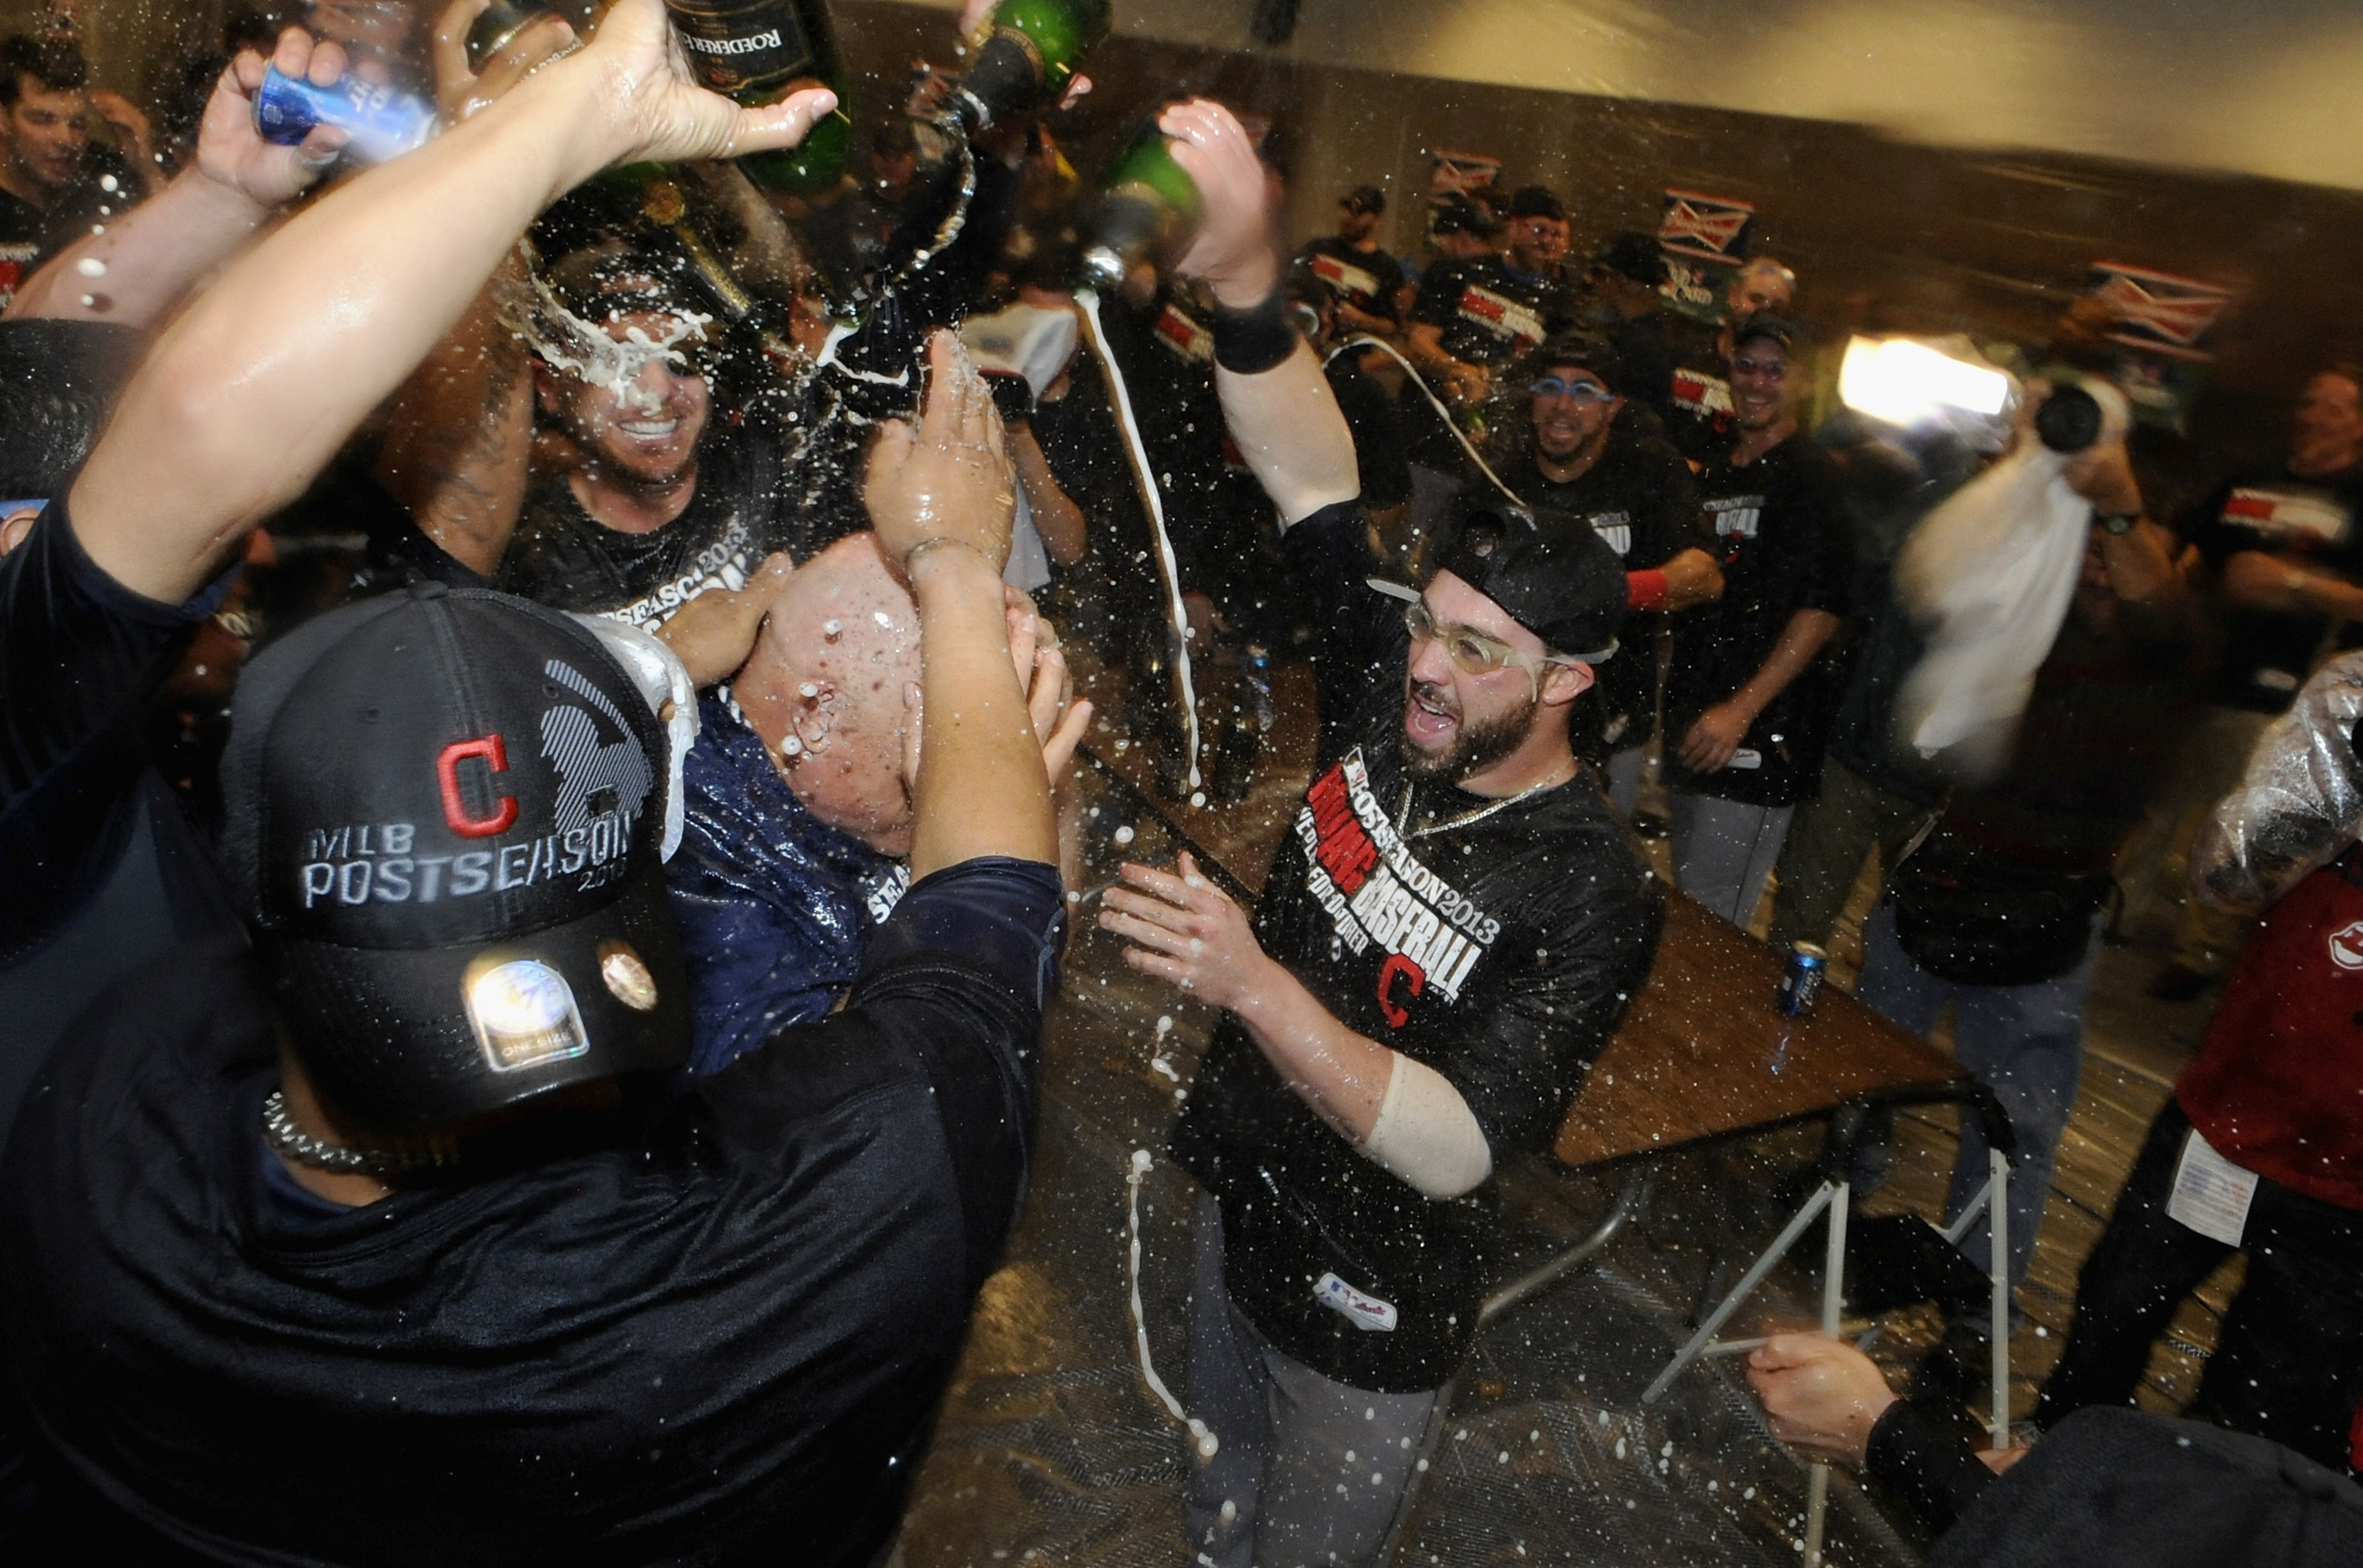 September 29 - Break out the champagne!